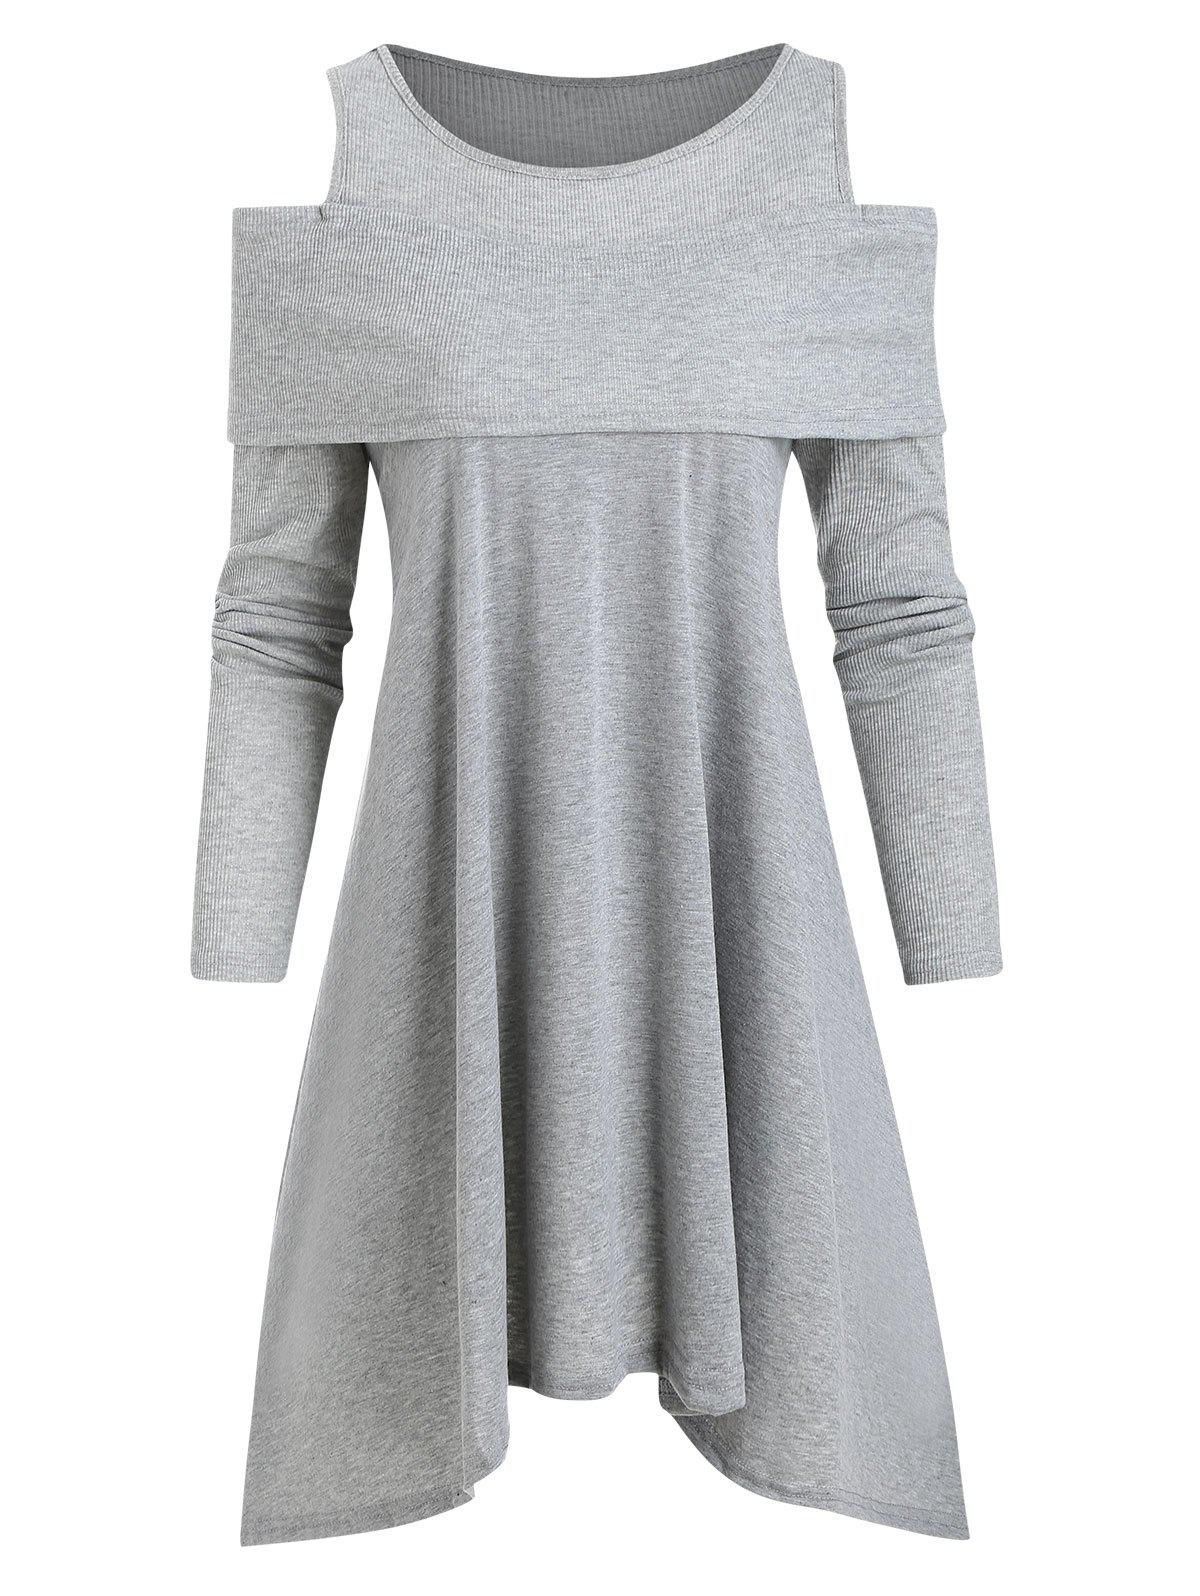 Ribbed Panel Jersey Cold Shoulder Asymmetrical Tunic Top - GRAY XXL